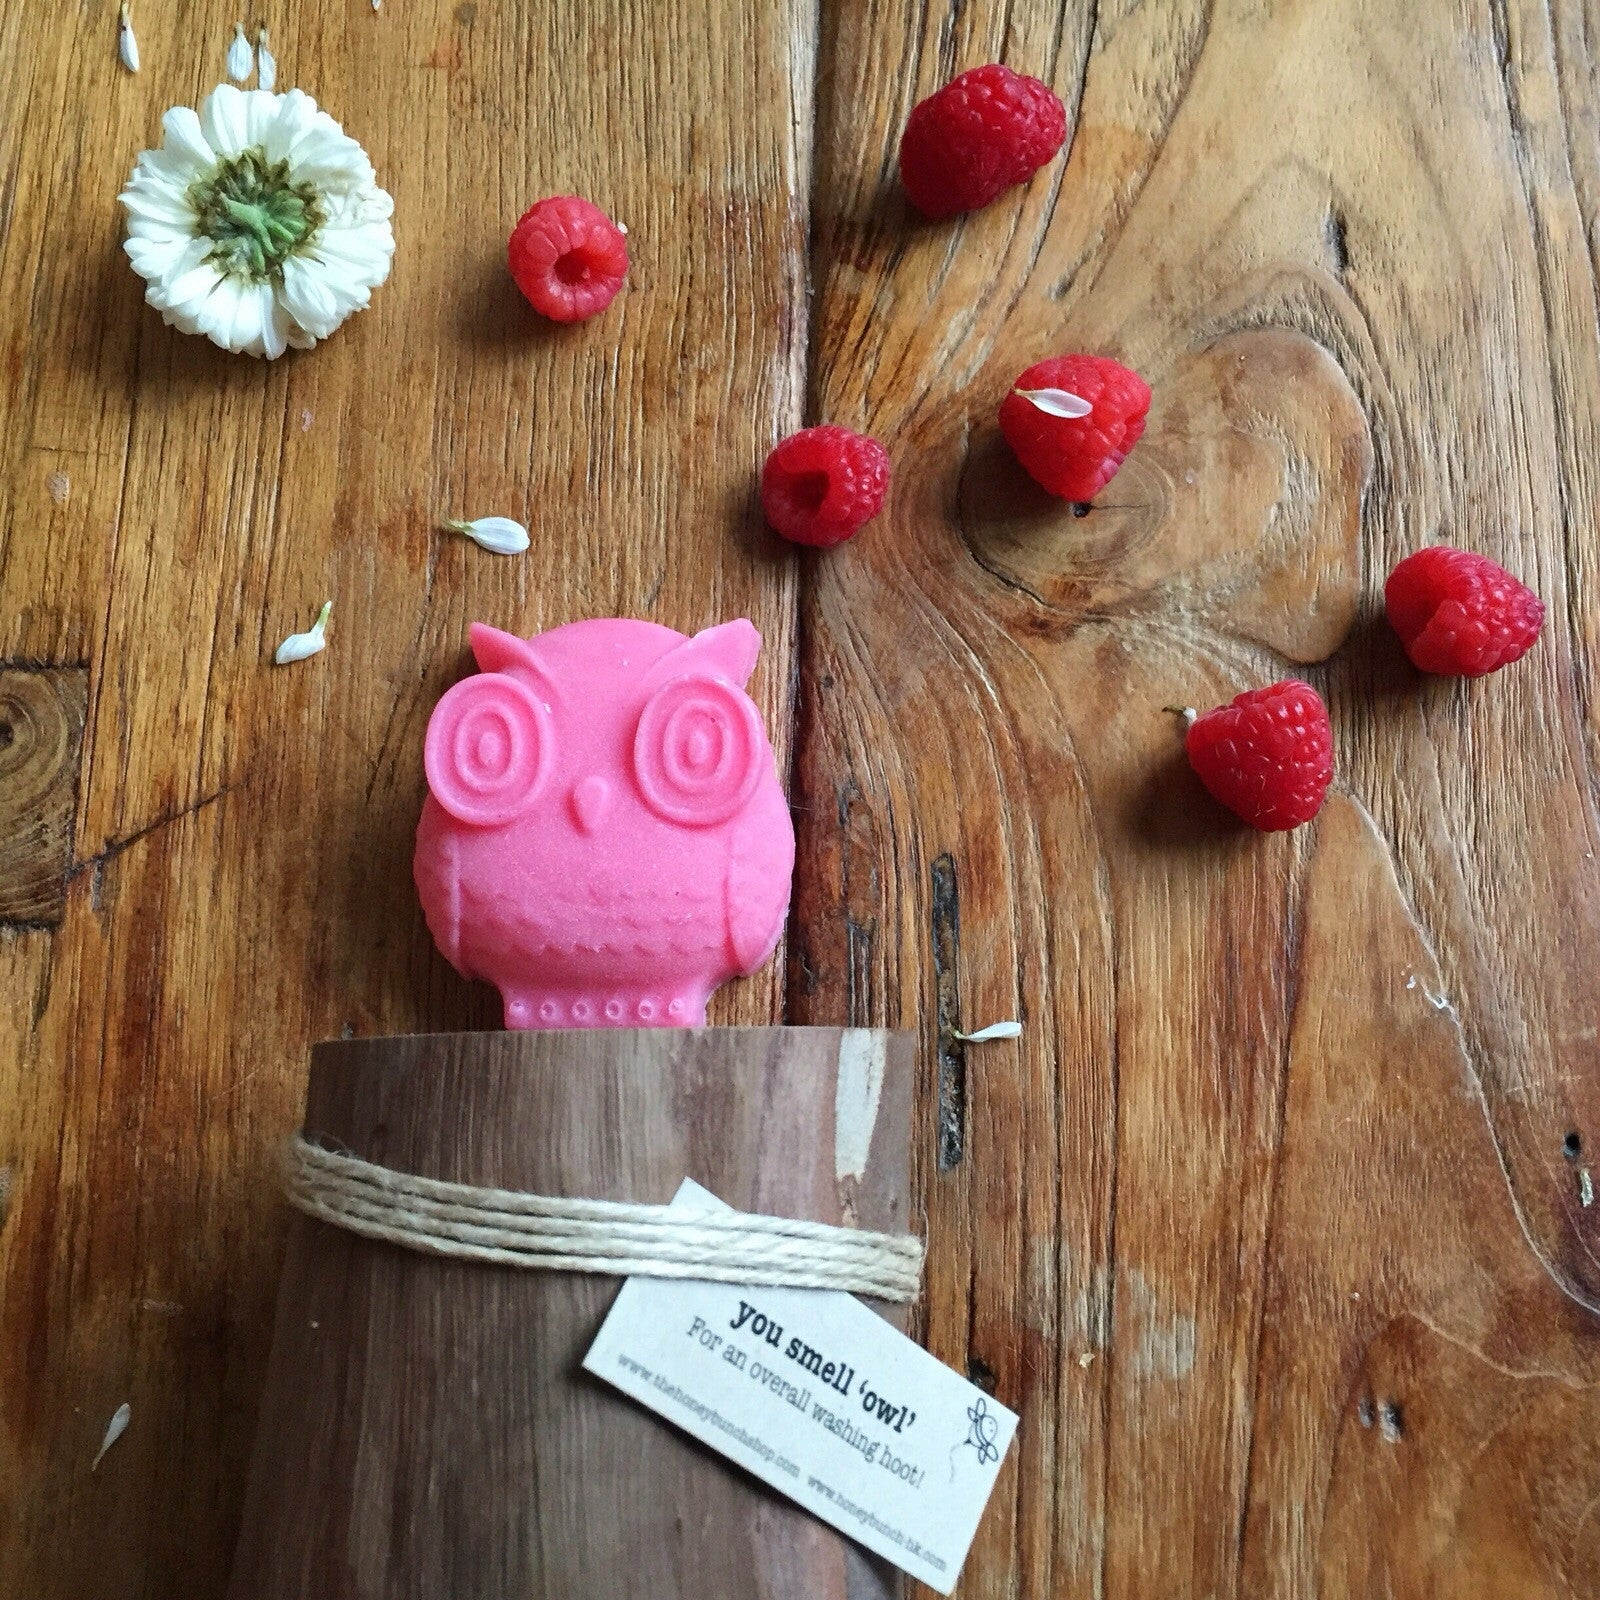 Indulge raspberry 'you smell owl' soap ...